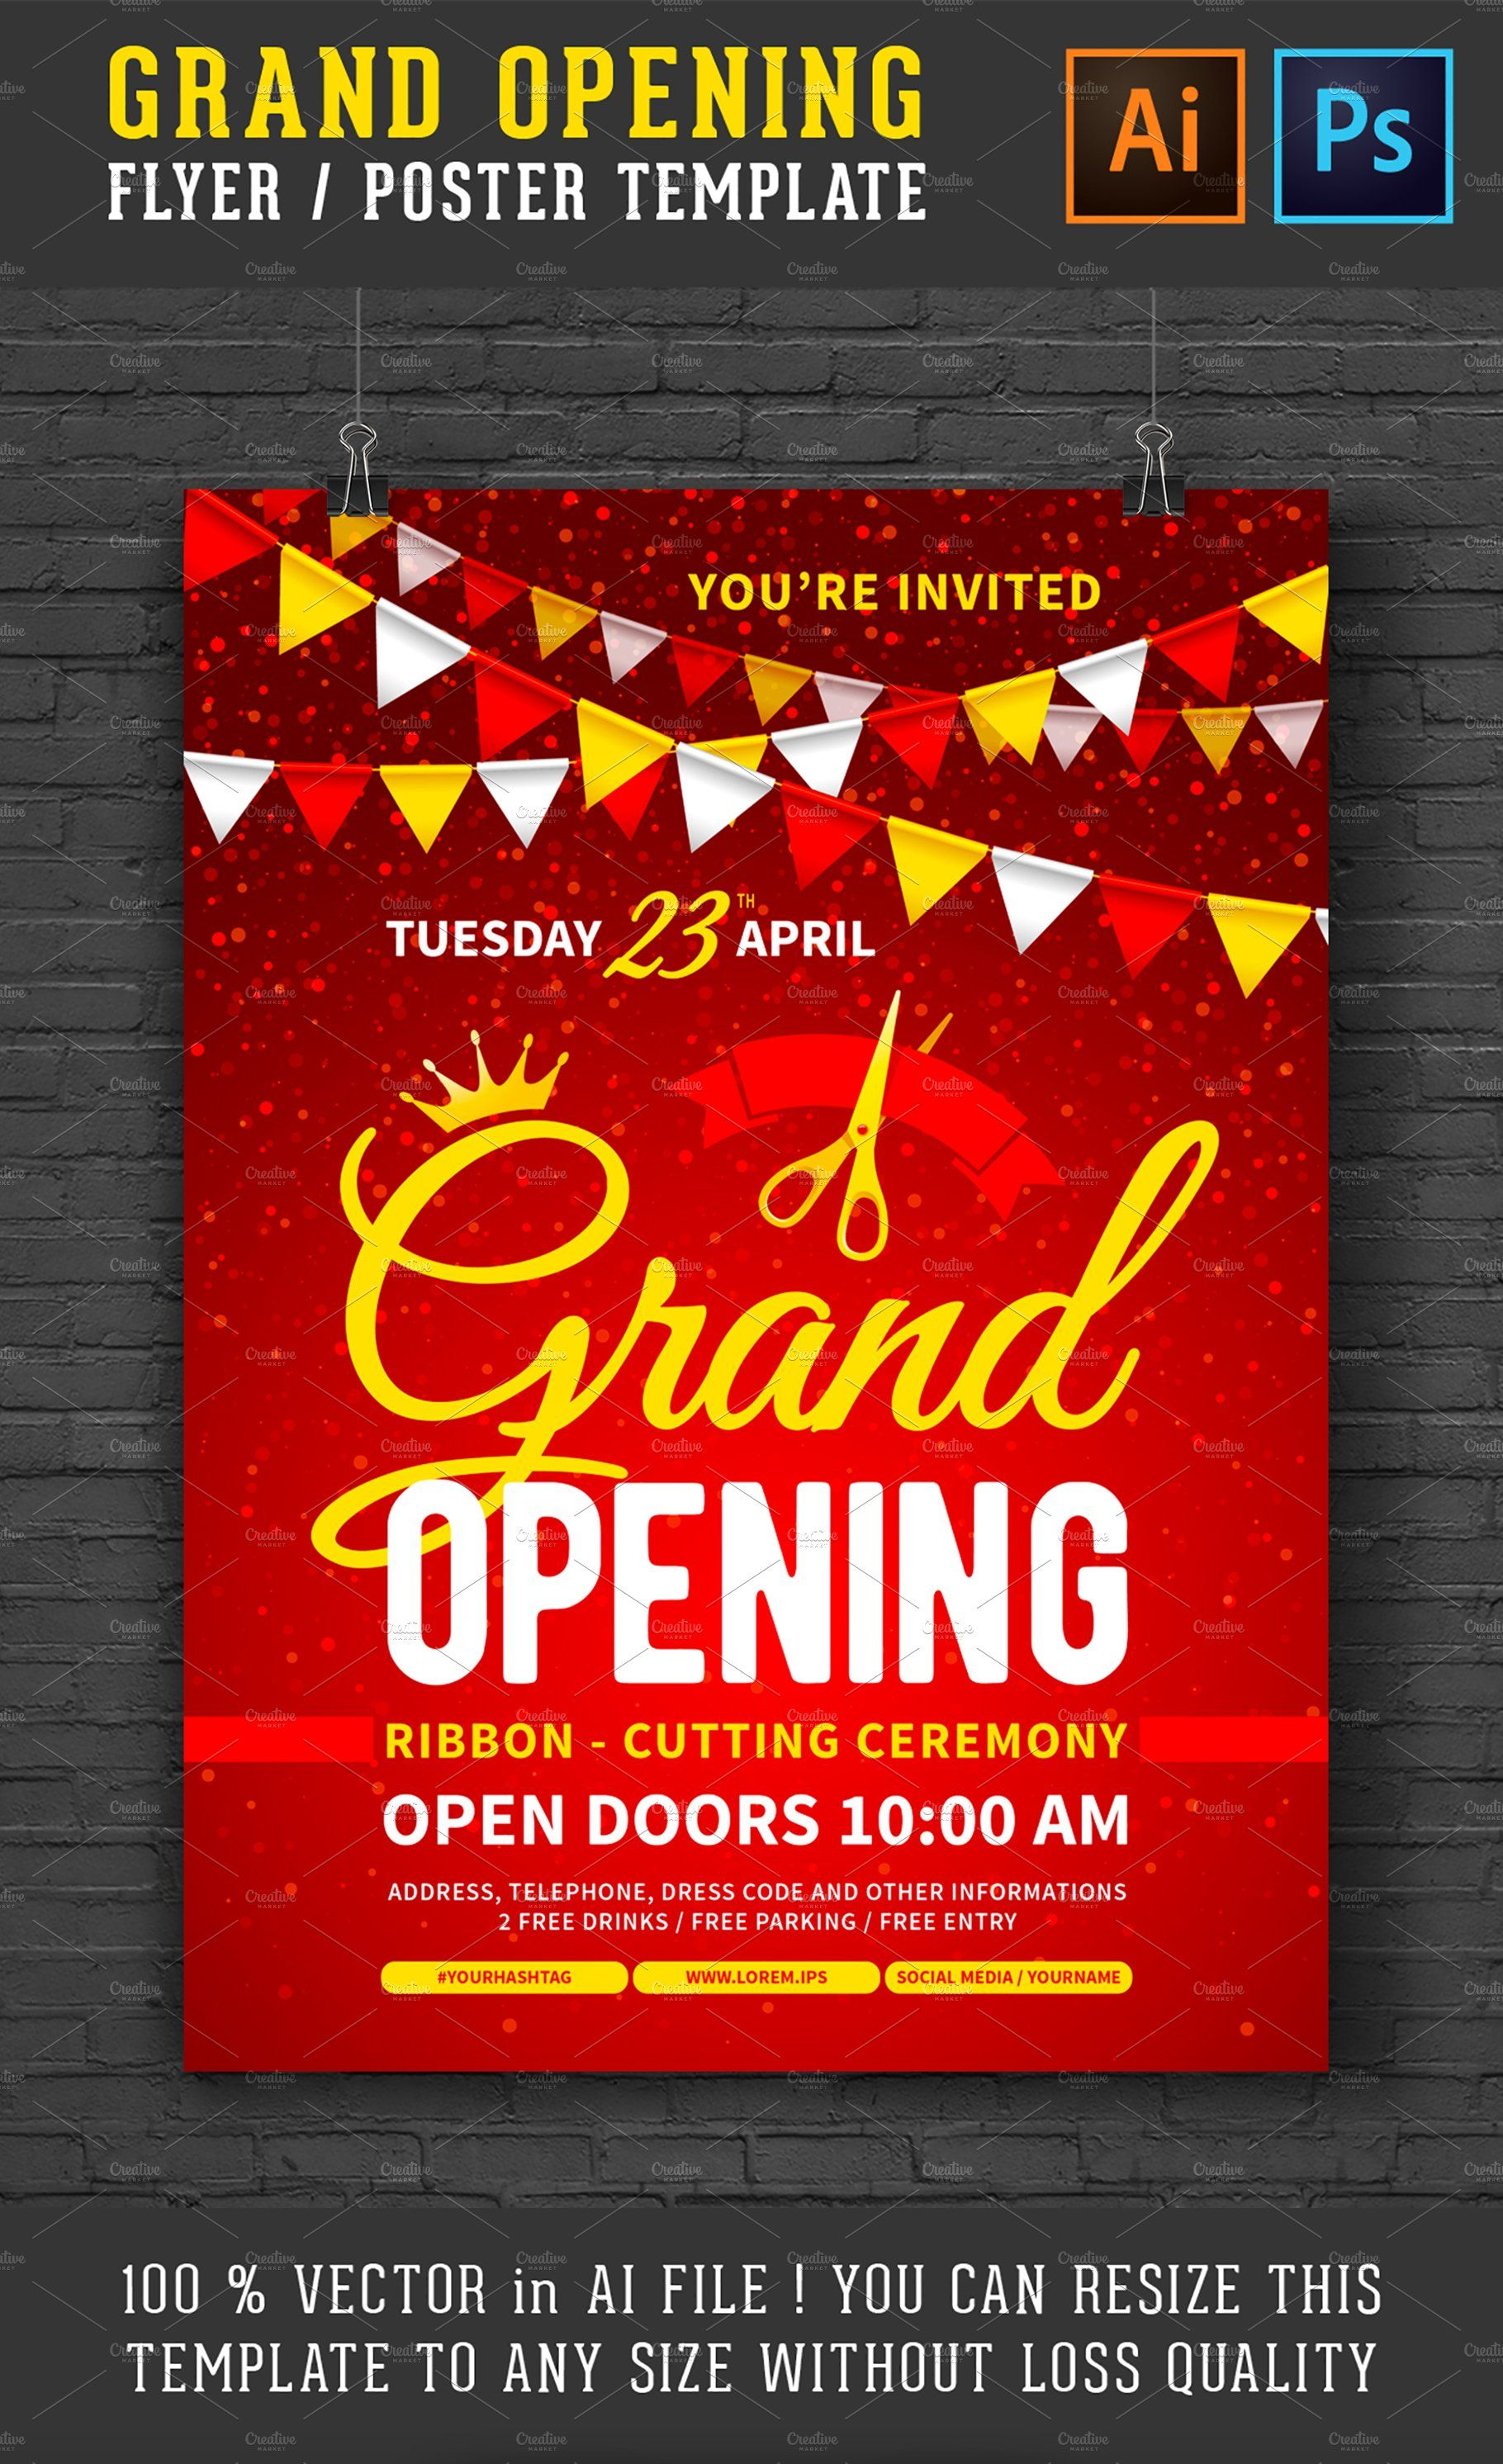 Grand Opening Poster Flyer Grand Opening Invitations Grand Opening Flyer Free grand opening flyer template